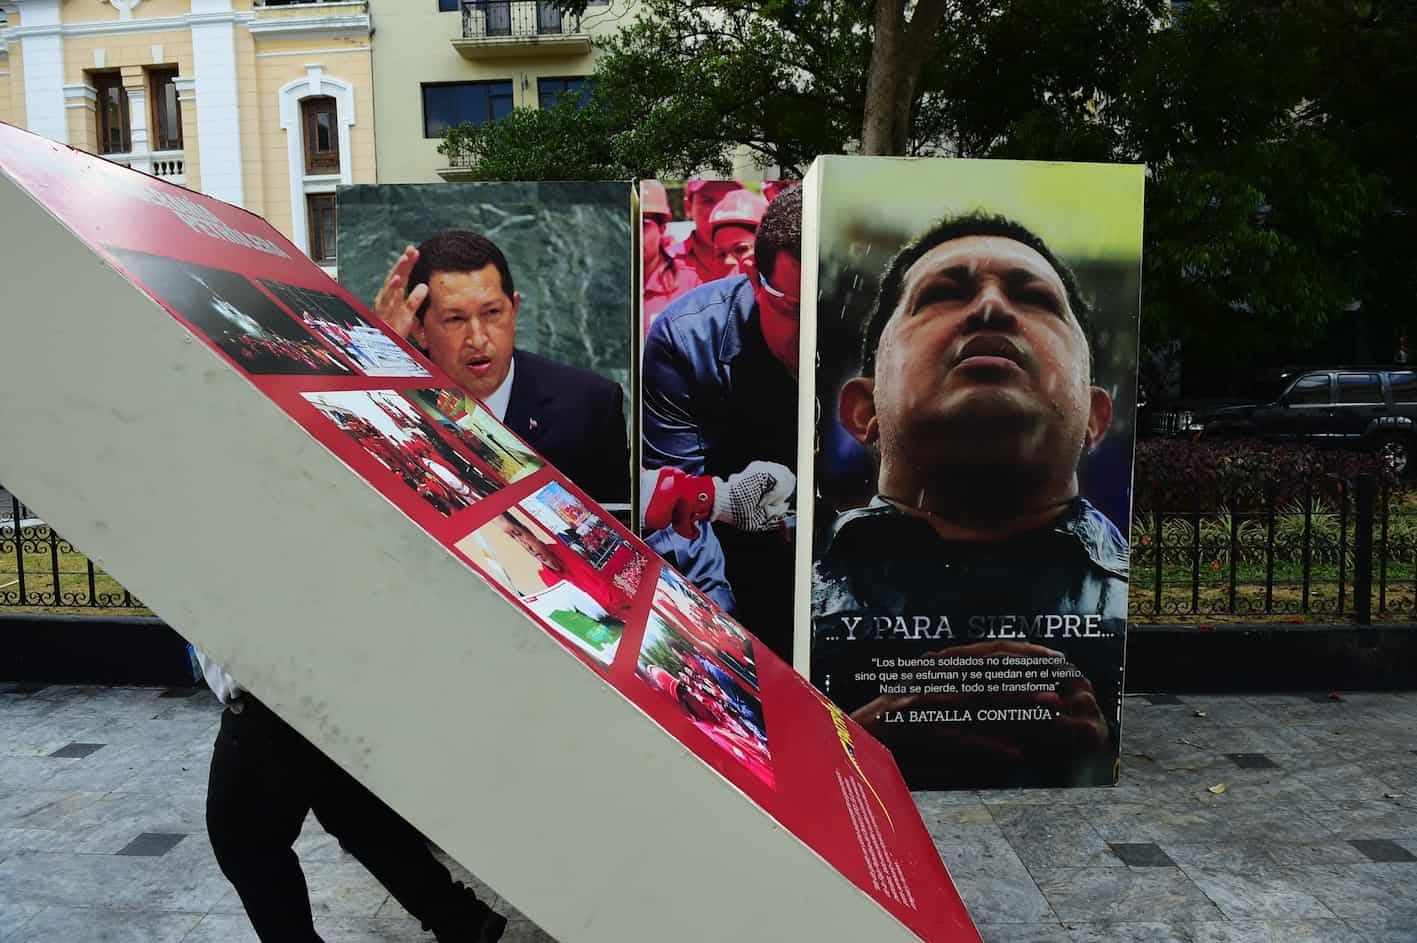 Venezuela National Assembly employees carrying images of Hugo Chávez